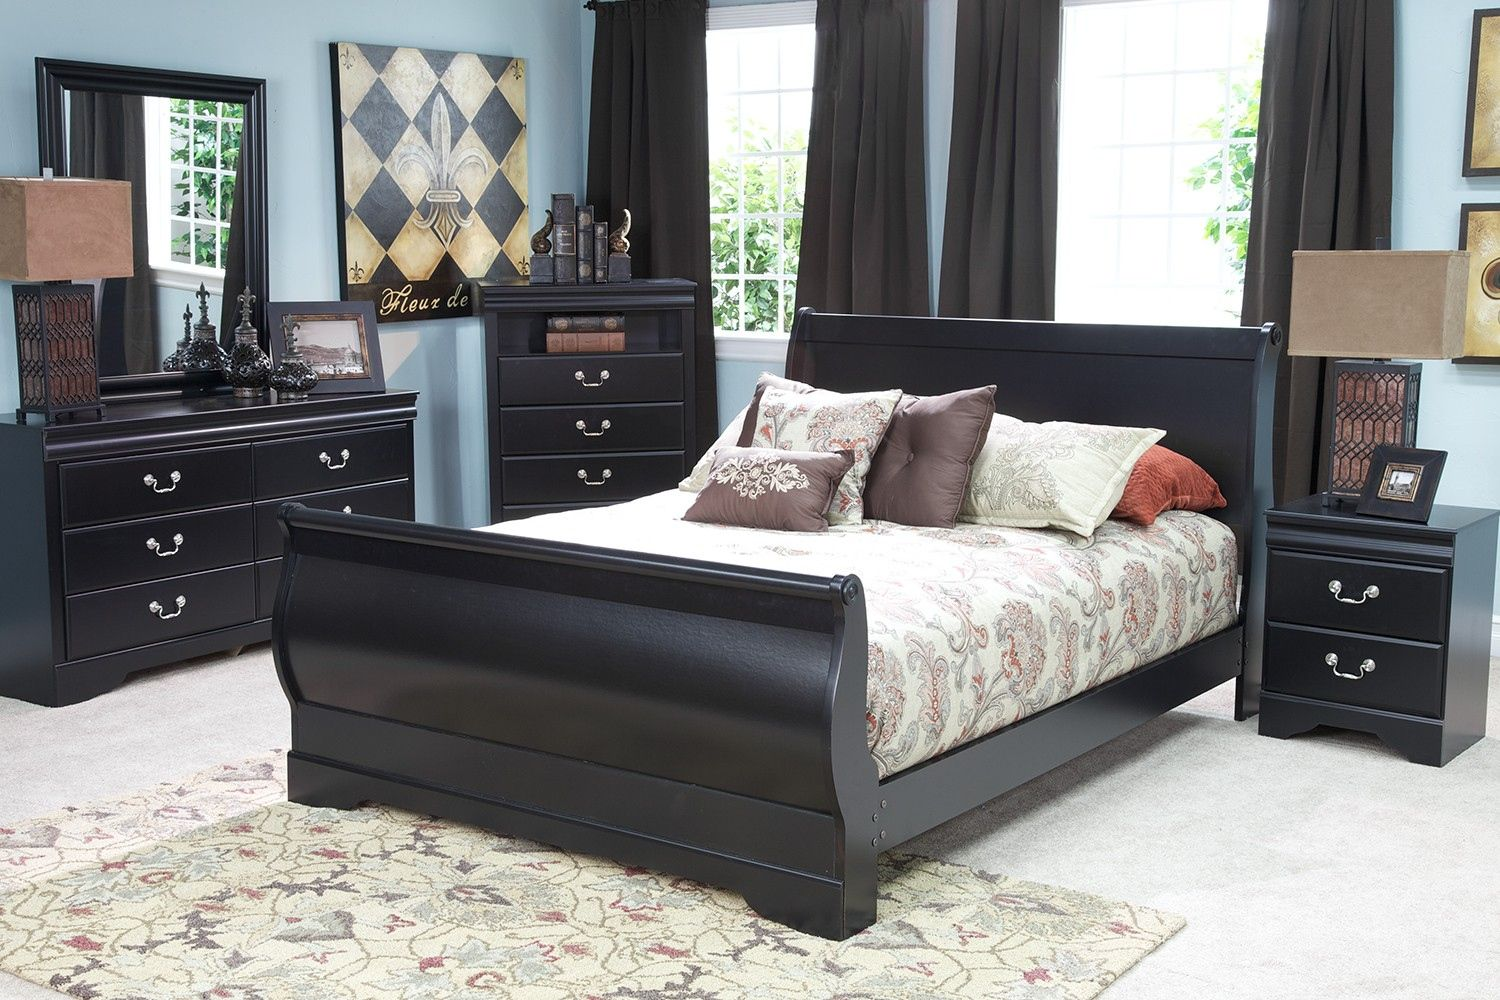 Mor Furniture Beds Modern Vintage Check More At Http Searchfororangecountyhomes